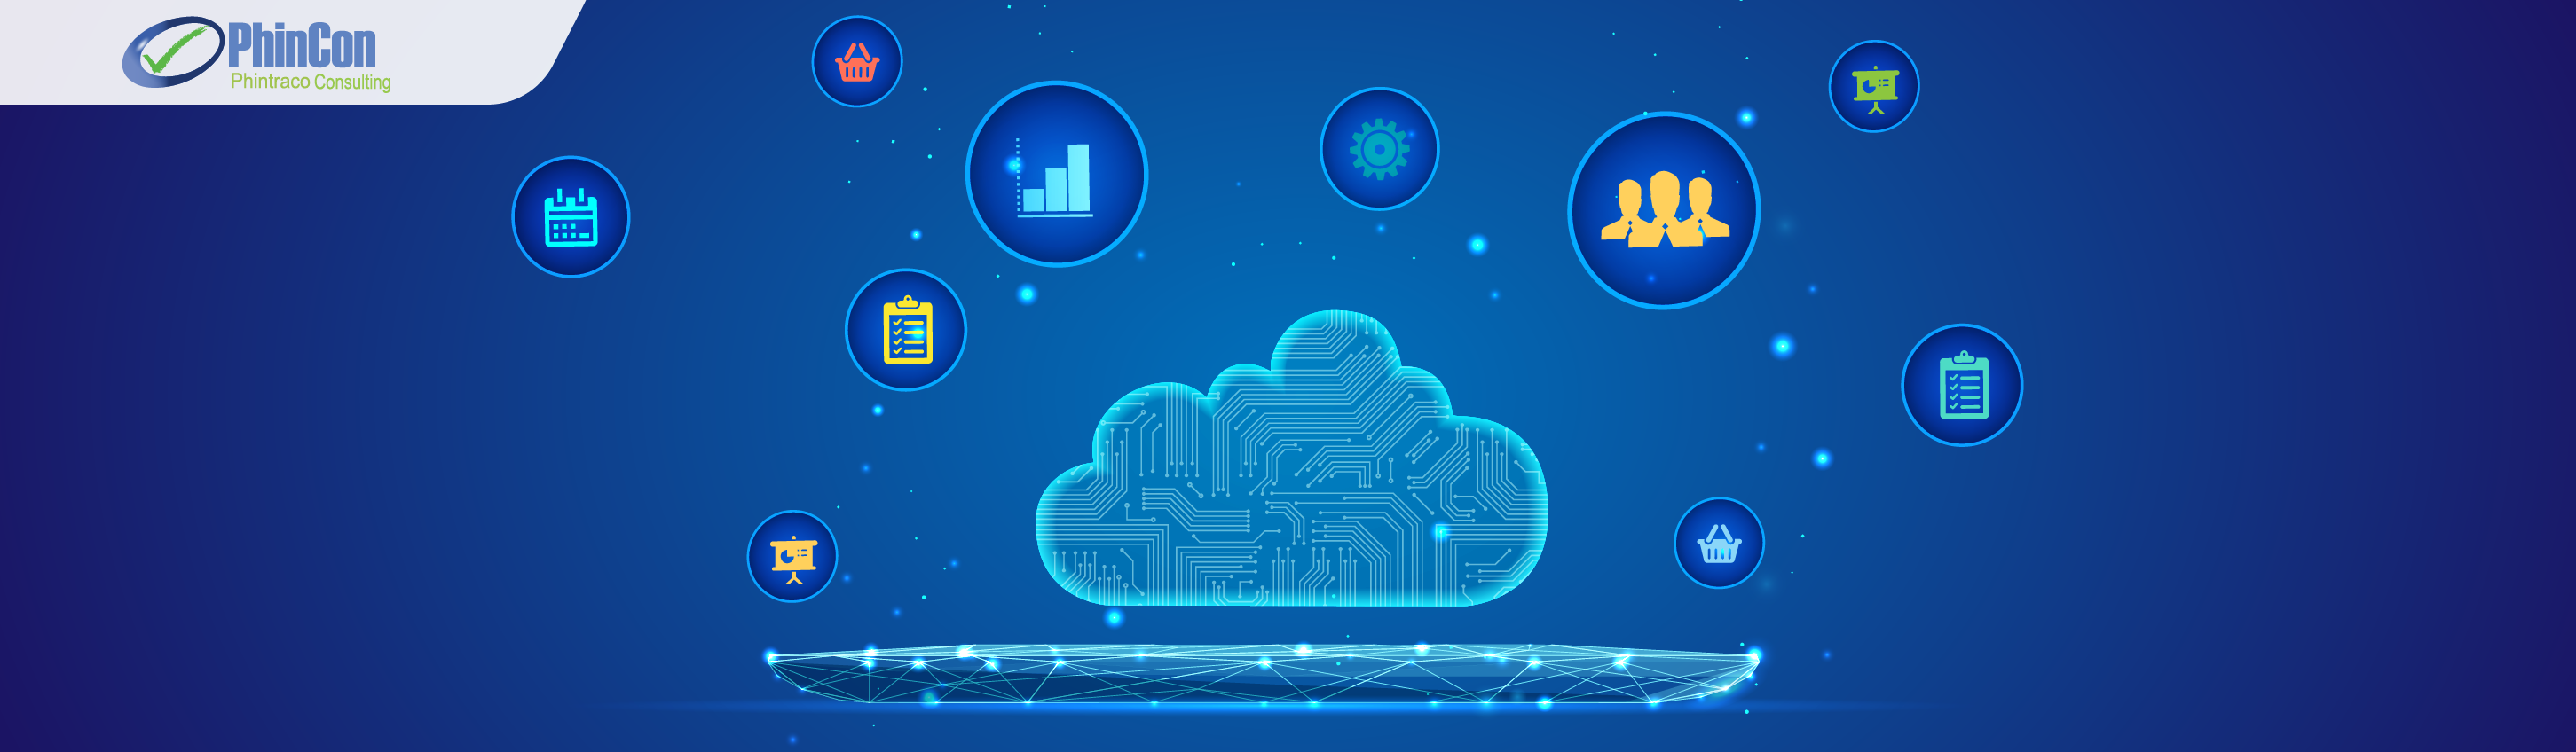 Cloud computing trends - Phincon